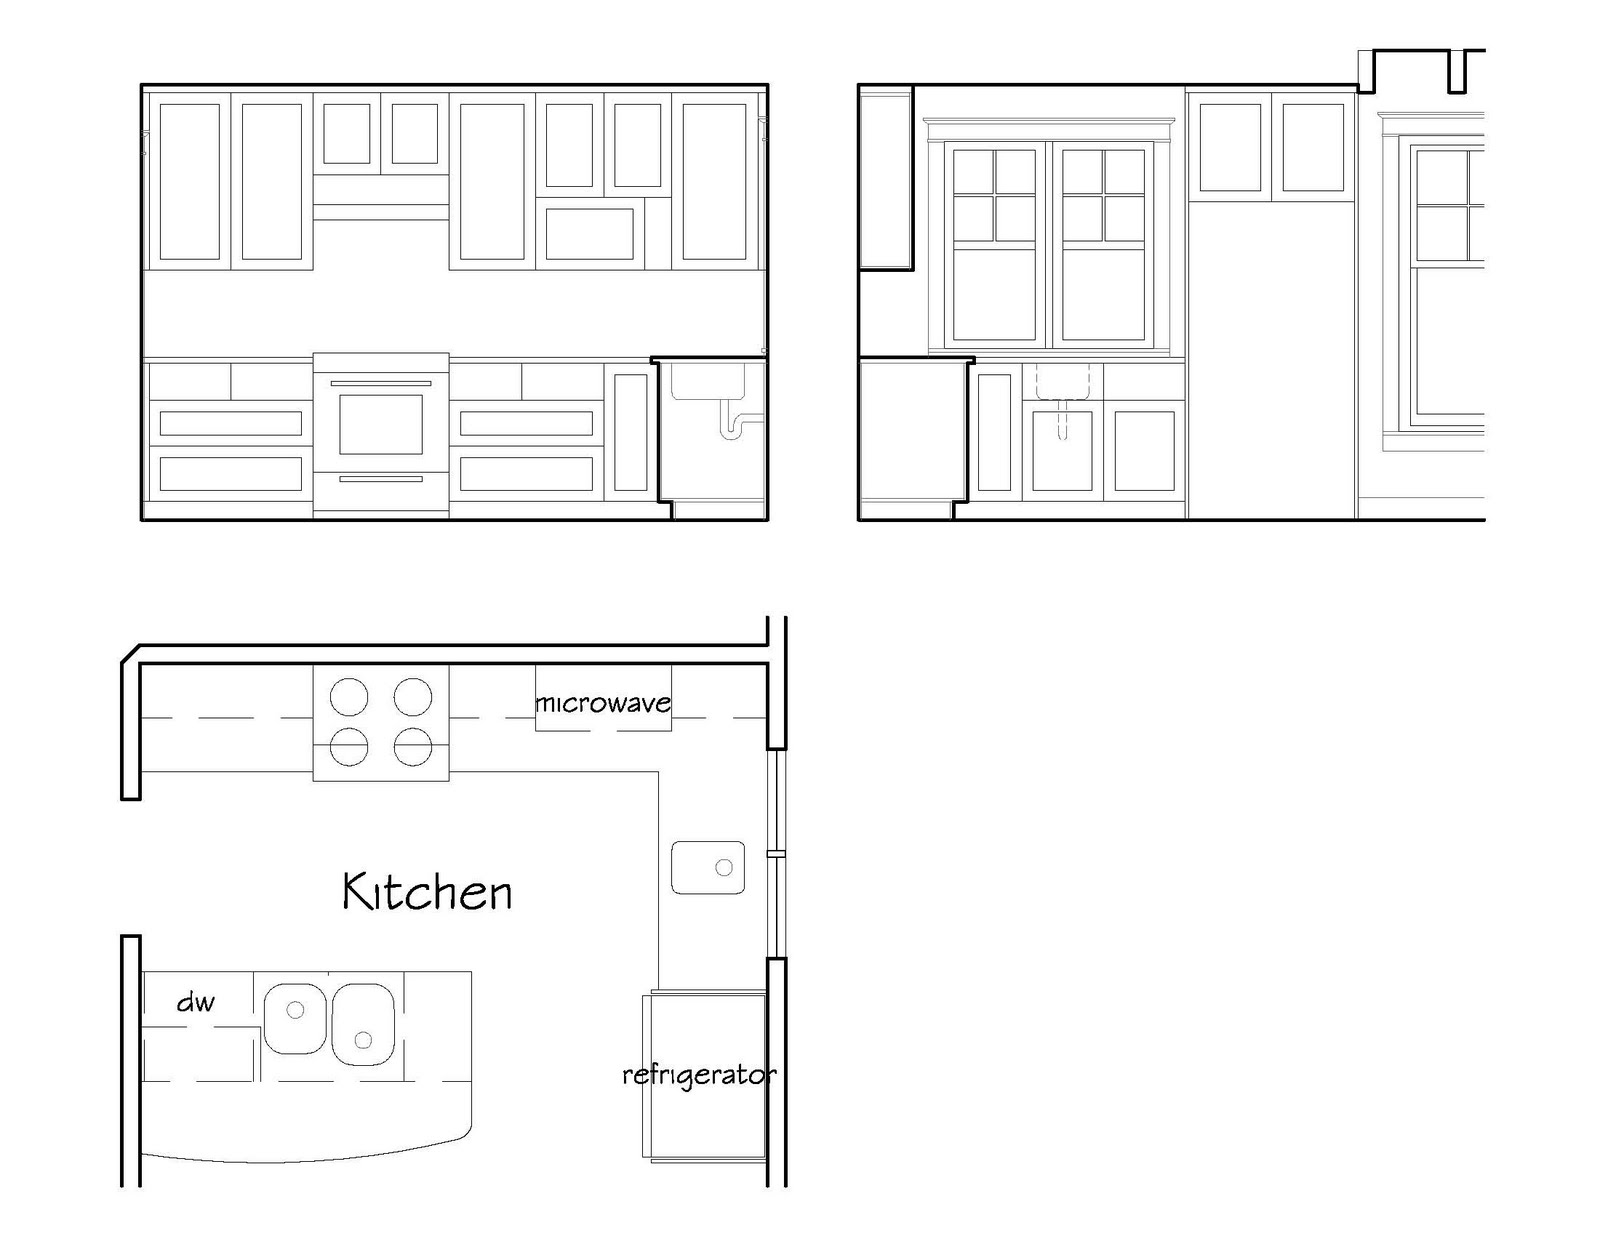 CabiOver Range Microwave Dimensions